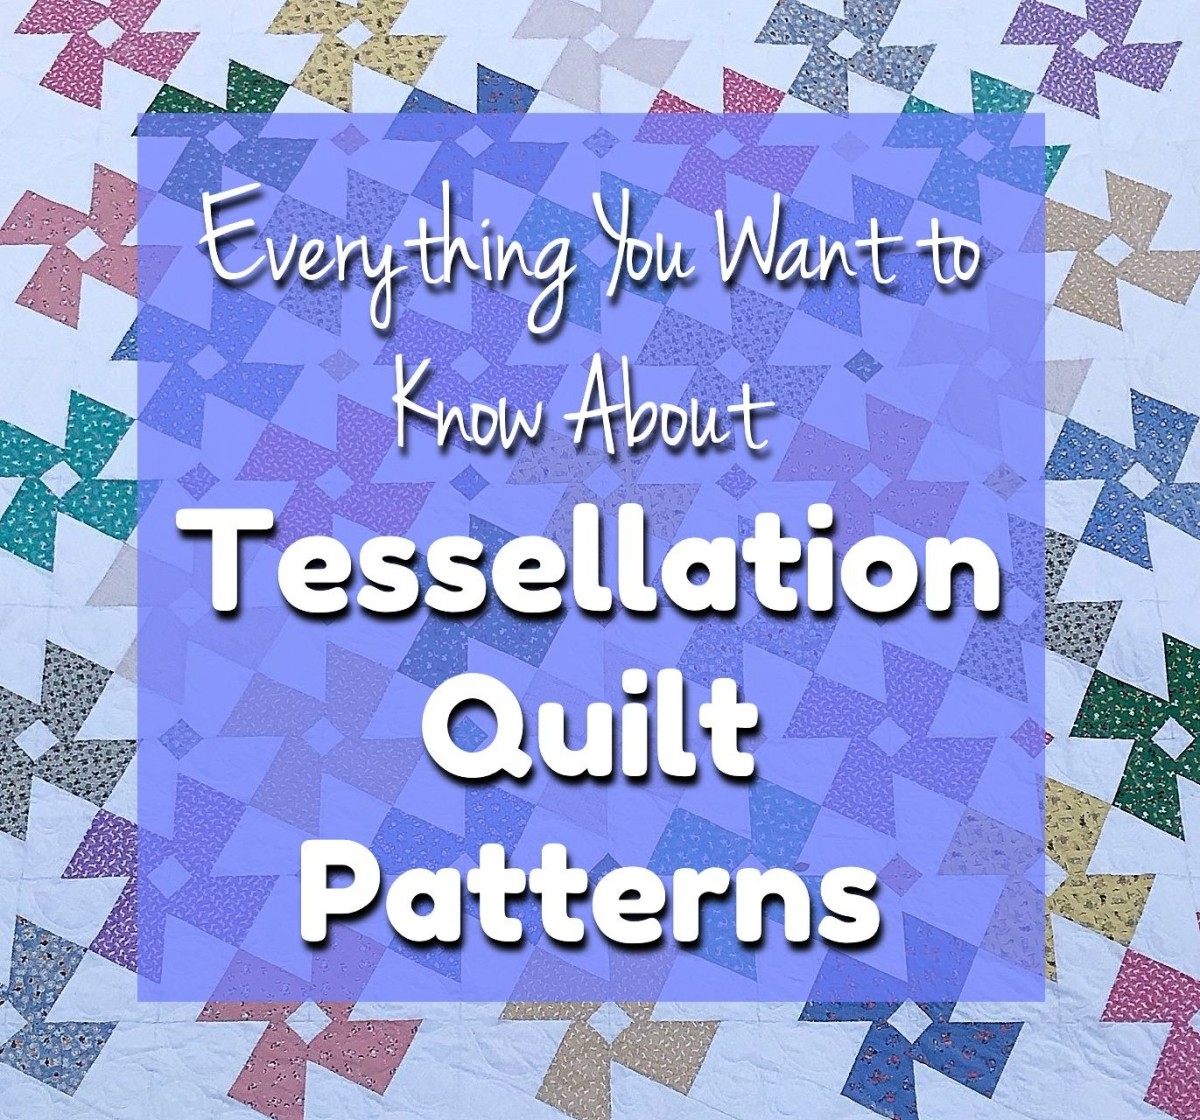 Everything you every wanted to know about tessellation quilt patterns.